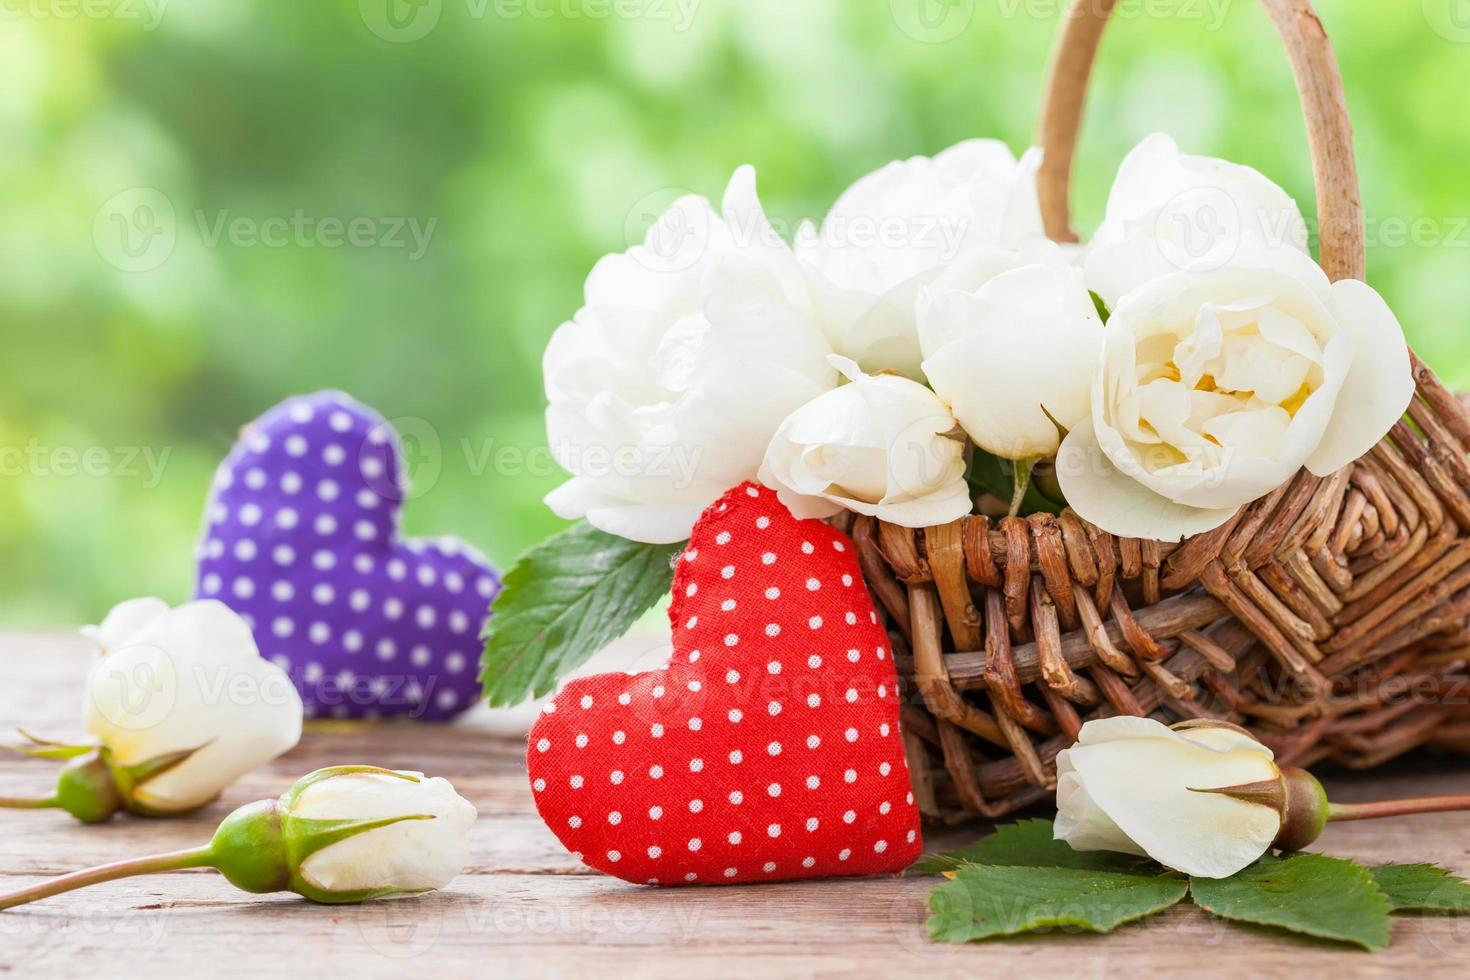 Wicker basket with wild rose flowers and two hearts. photo